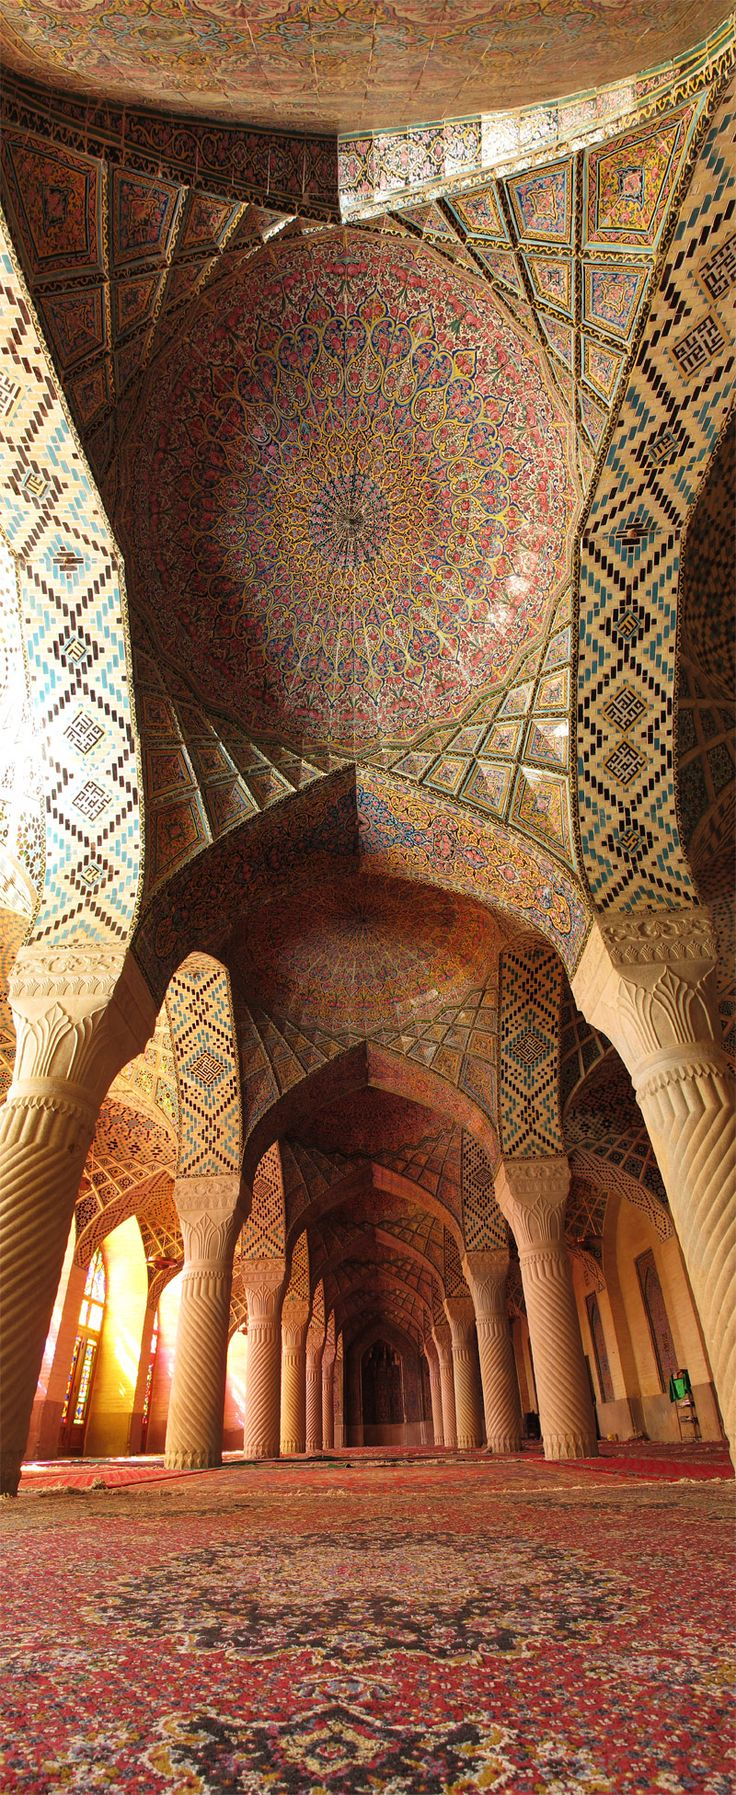 Interior of an unknown Islamic style structure. The tile mosaic work is extraordinary. I'm not sure but I'm guessing it might be in Iran.